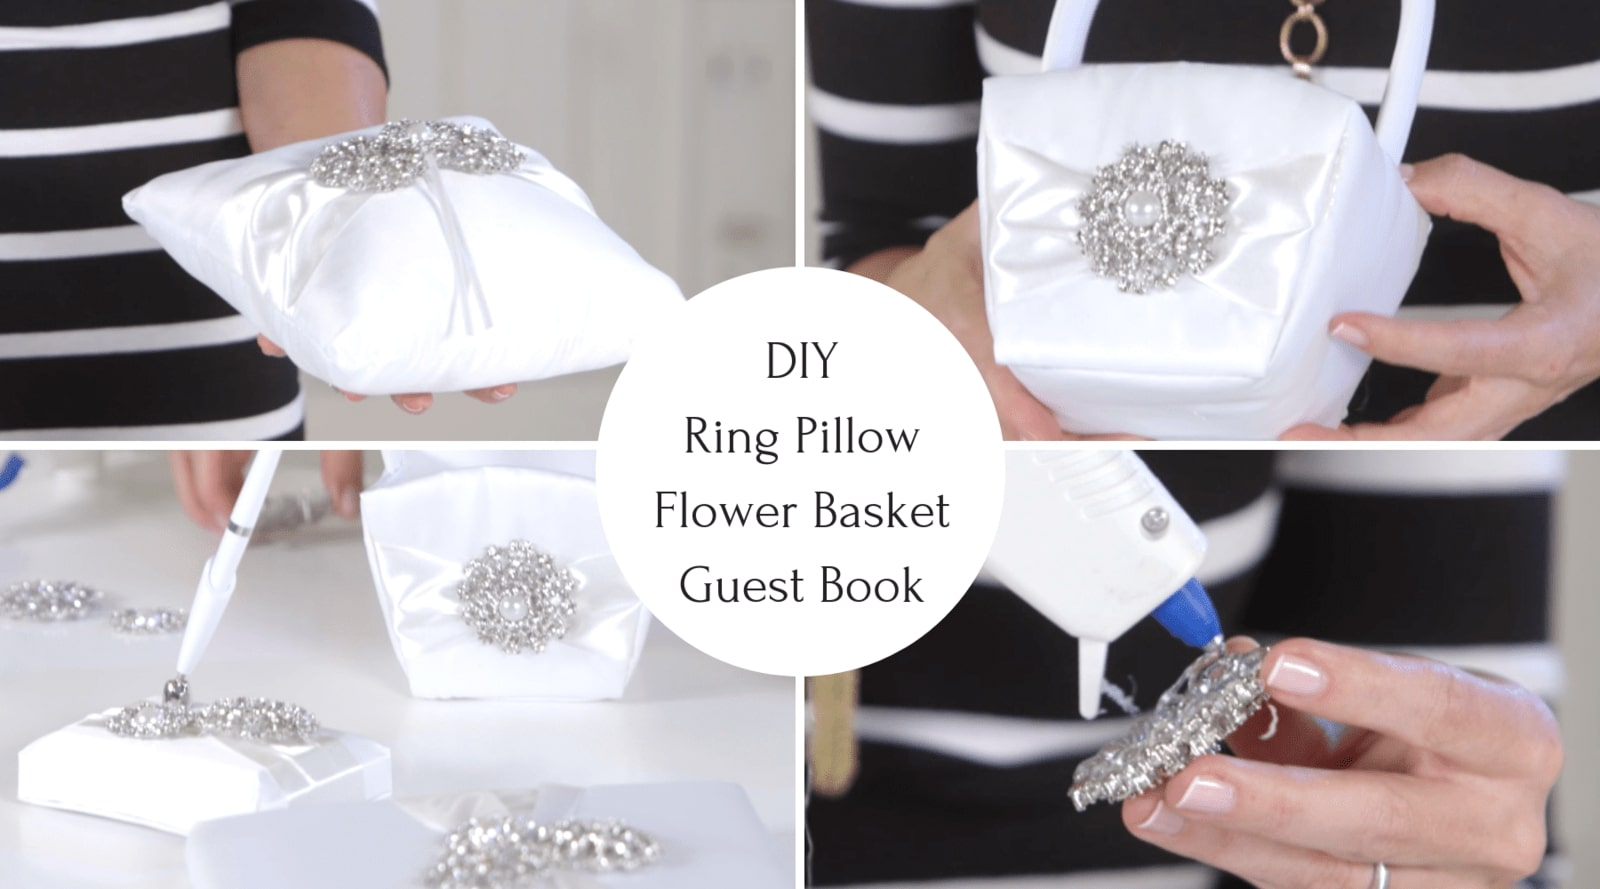 DIY Tutorial - Ring Bearer Pillow, Flower Basket and a Guest Book